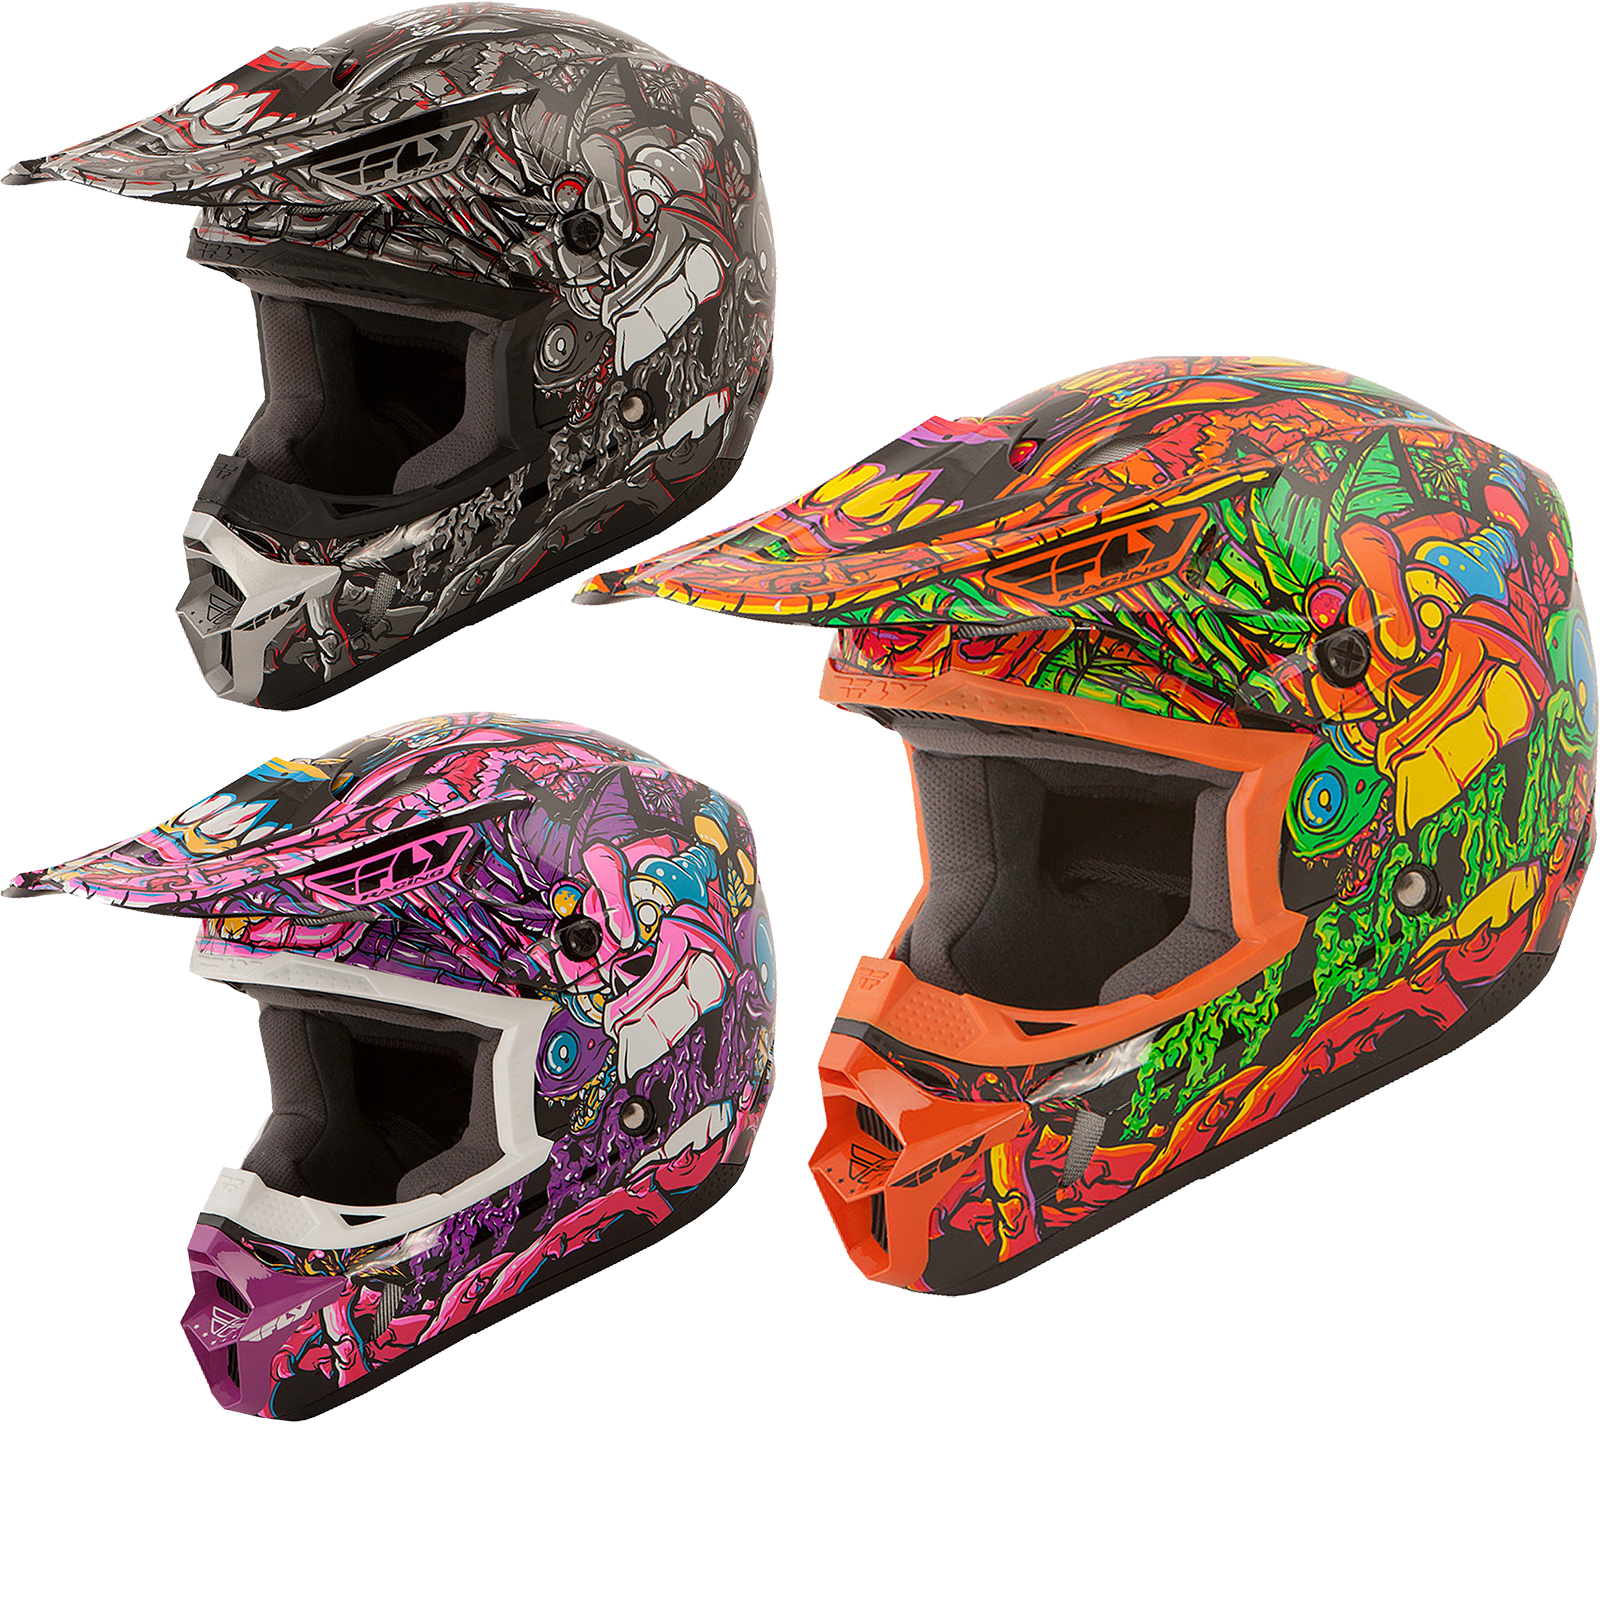 fly racing 2016 kinetic jungle youth motocross helmet 21333 | 21333 fly racing 2016 kinetic jungle youth motocross helmet 1600 0